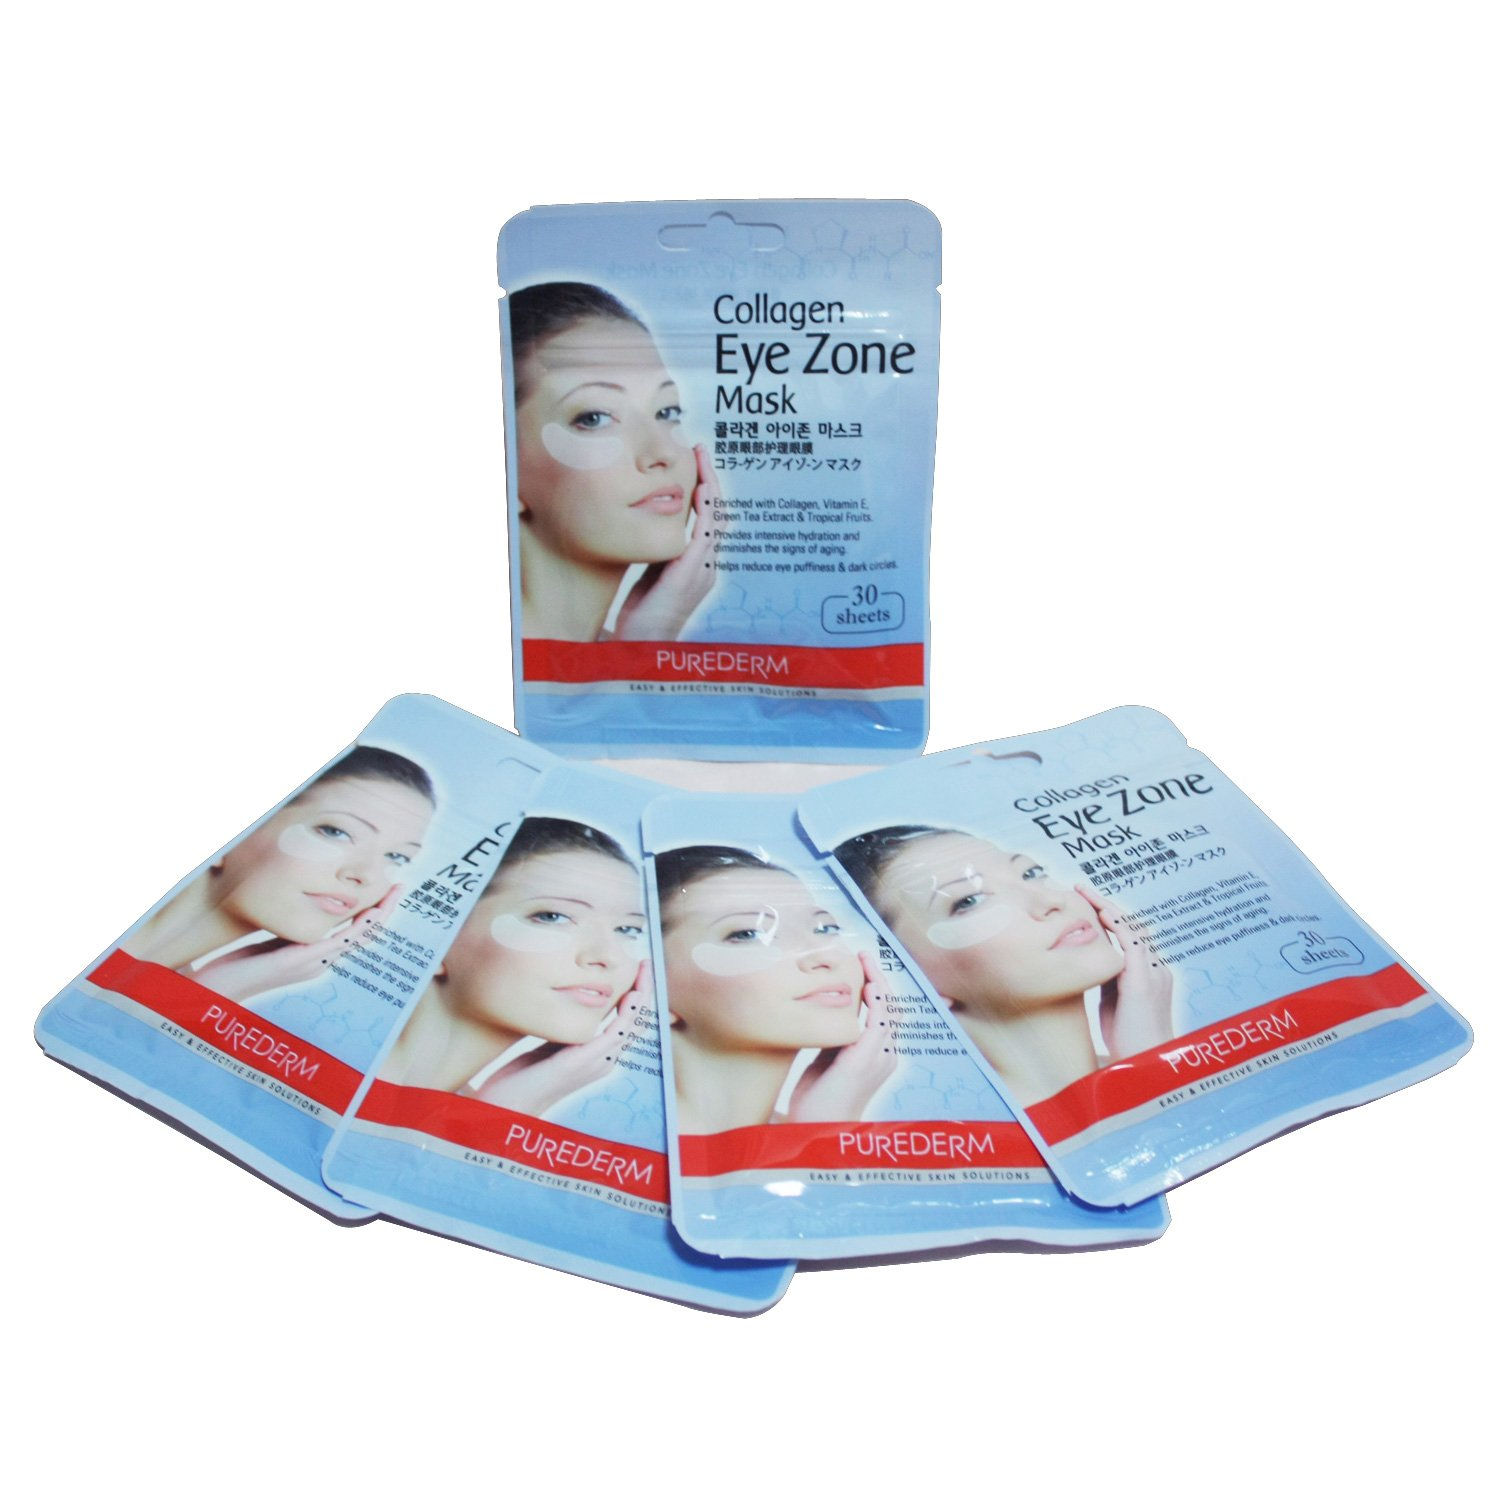 Purederm Collagen Eye Zone Mask Pad Patches - Wrinkle Care, Dark Circles Whitening (5 Pack (150 Sheet)) by Purederm C&Tech